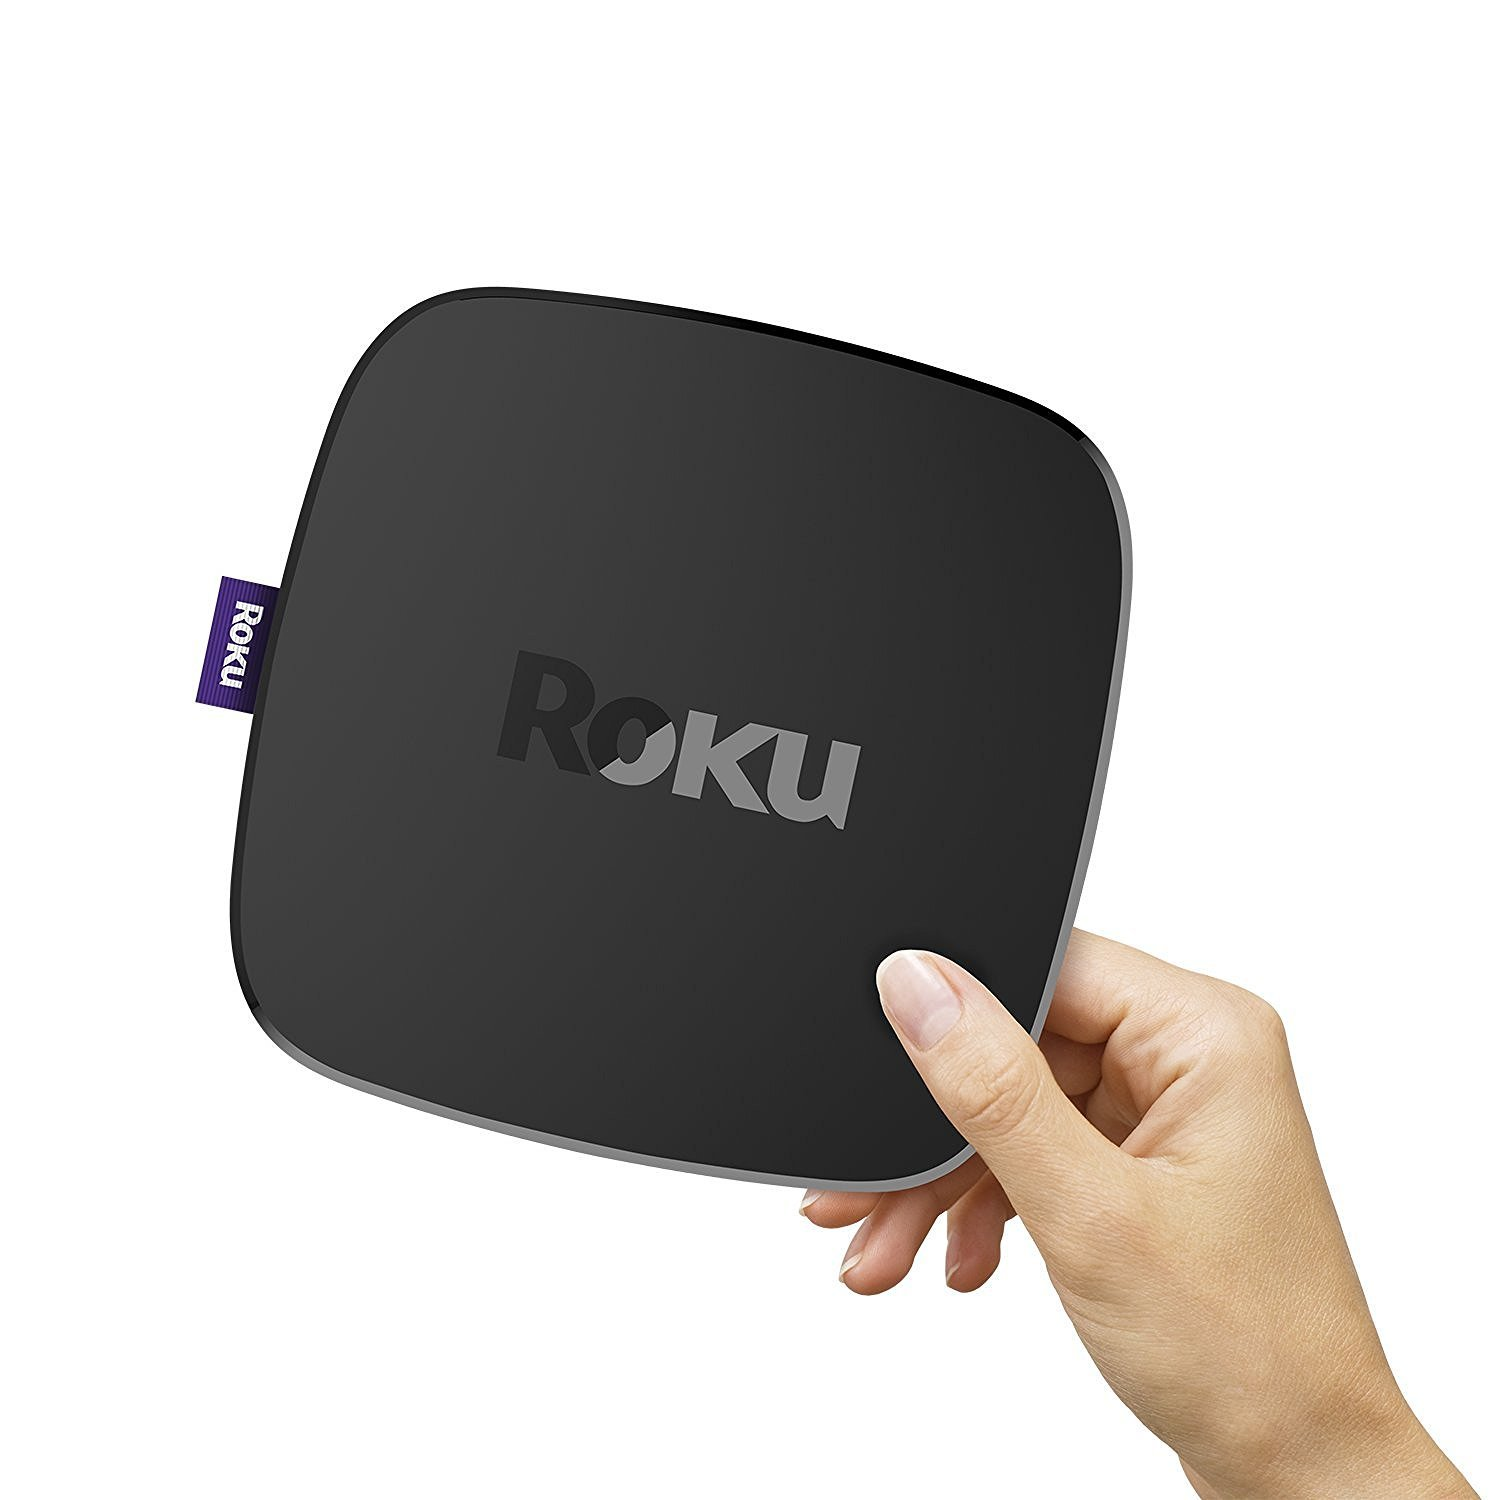 Roku Premiere 4620XB 4K UHD Streaming Media Player, Dual-Band Wi-Fi, and IR Remote (Certified Refurbished) by Roku